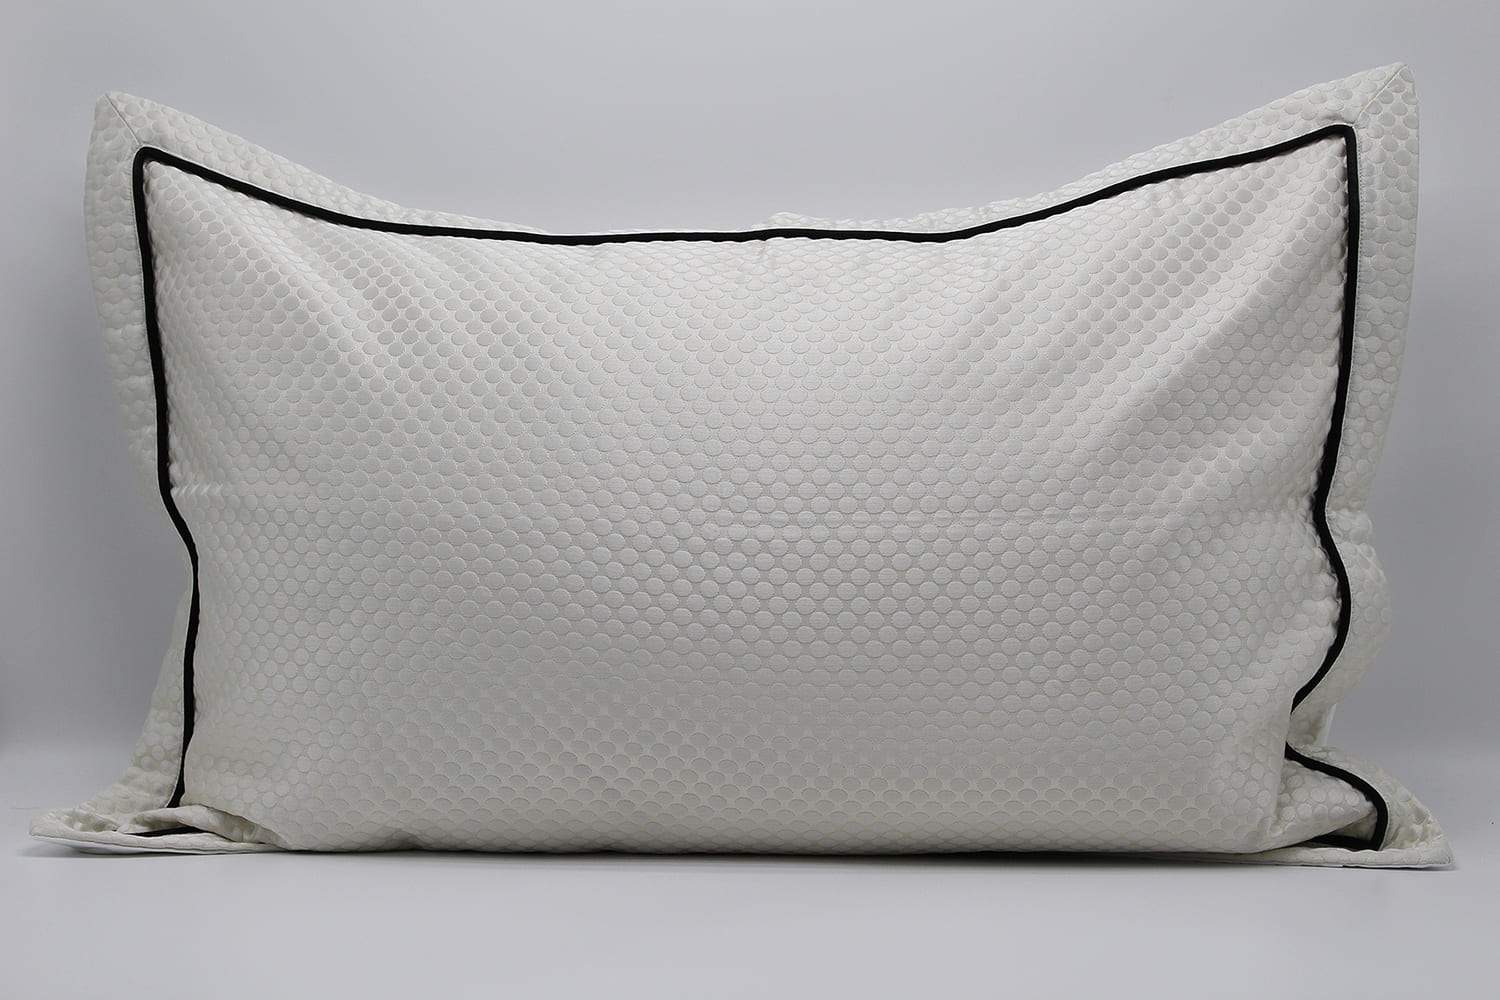 BLACK LINE BEAUTIFUL WHITE  PILLOWS- ANGIE HOMES ANGIE HOMES